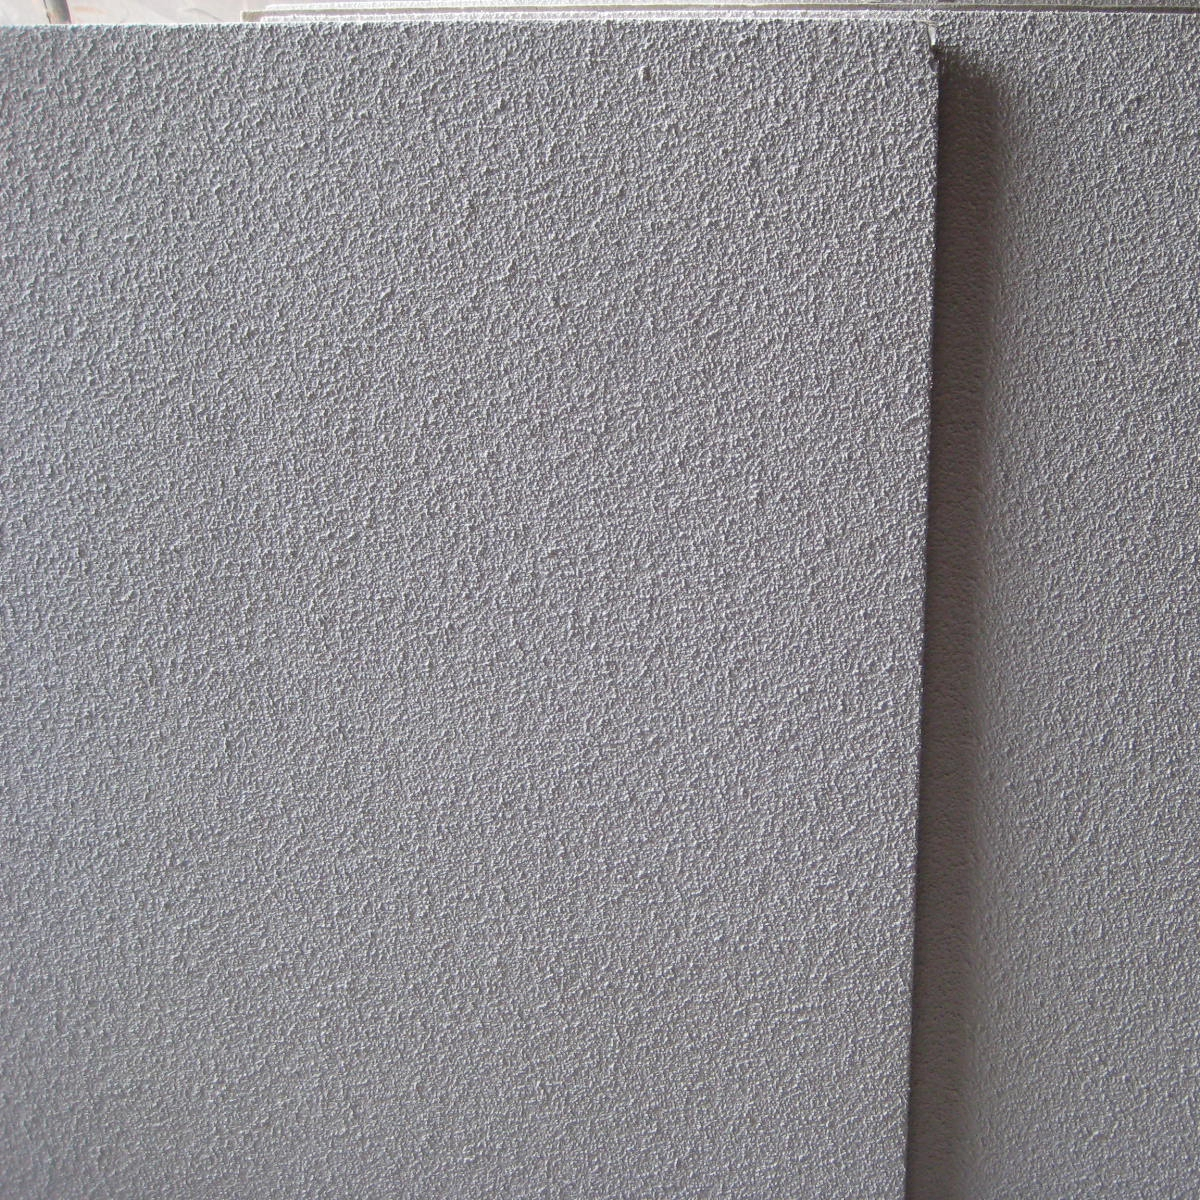 Mineral Fiber Ceiling - Special Series